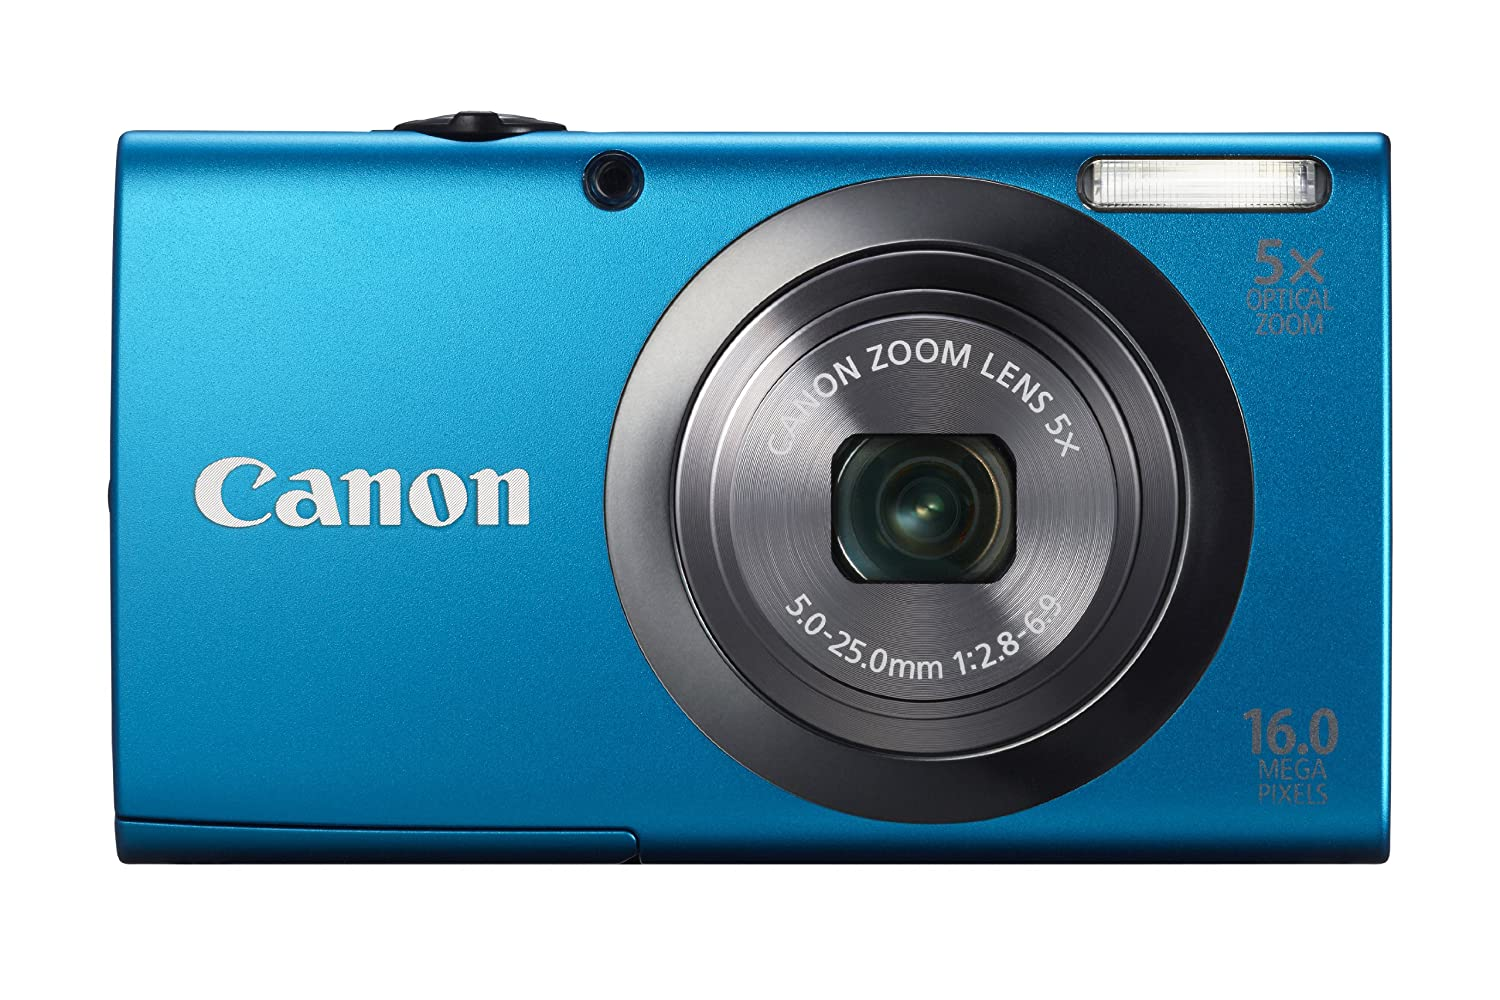 91bLLr bhoL. SL1500  Canon PowerShot A2300 16.0 MP Digital Camera with 5x Digital Image Stabilized Zoom 28mm Wide Angle Lens with 720p HD Video Recording (Red)